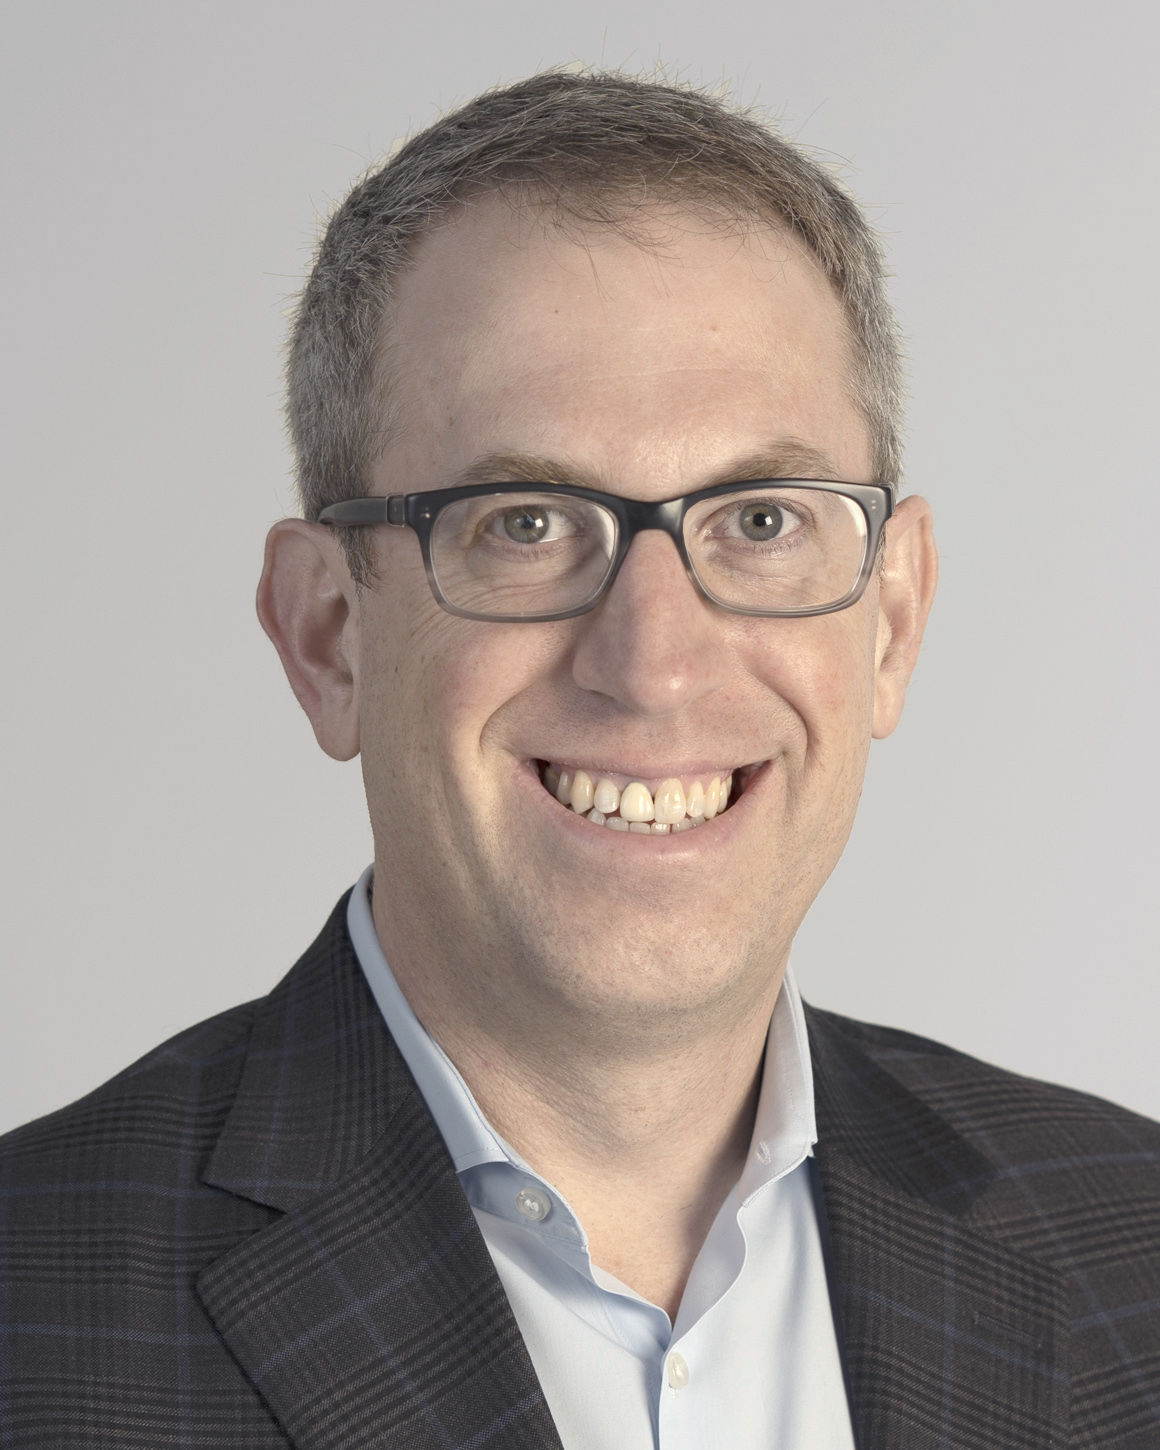 Headshot image for Dr. Michael Stoffman